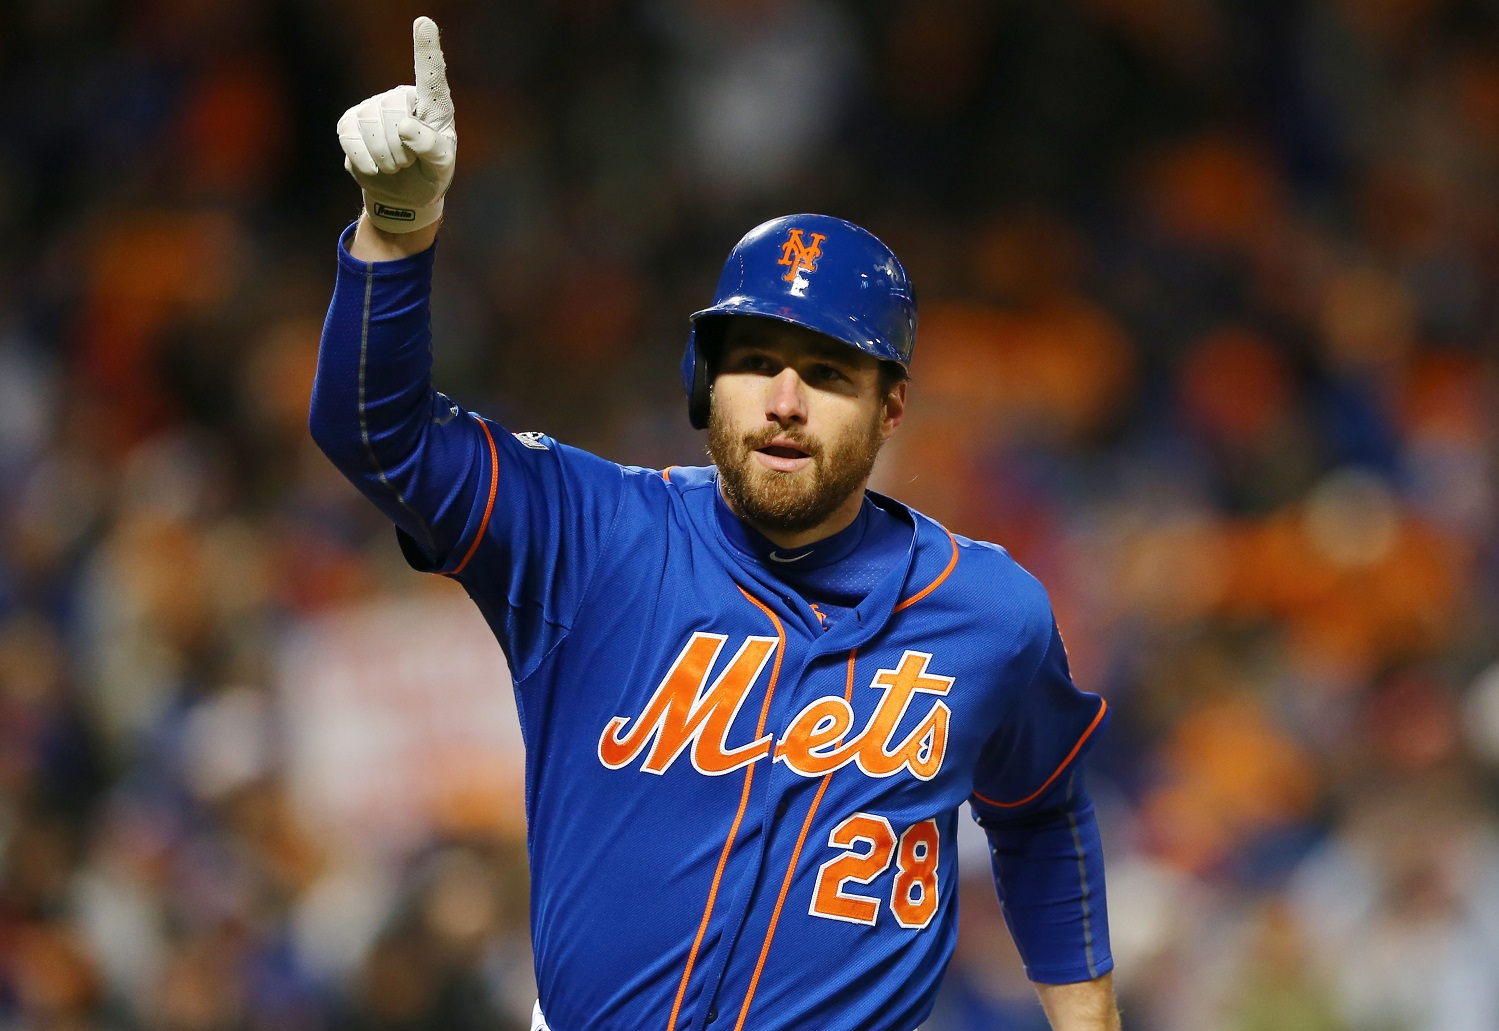 New York Mets' Daniel Murphy celebrates his home during the first inning of Game 1 of the National League baseball championship series against the Chicago Cubs Saturday, Oct. 17, 2015, in New York. (AP Photo/Elsa Garrison, Pool)